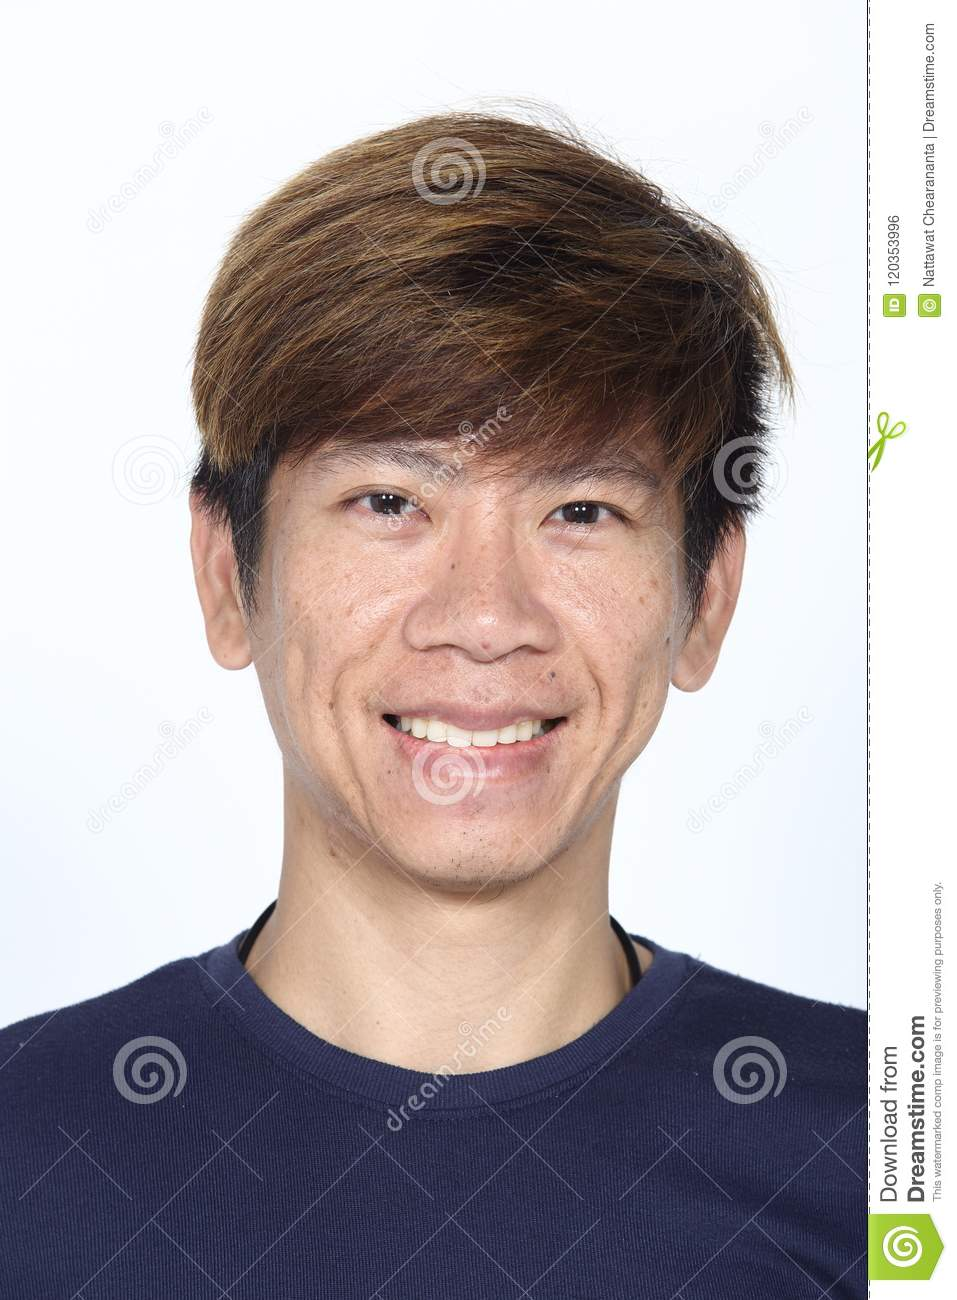 Asian Man Before Applying Make Up Hair Style No Retouch Fresh